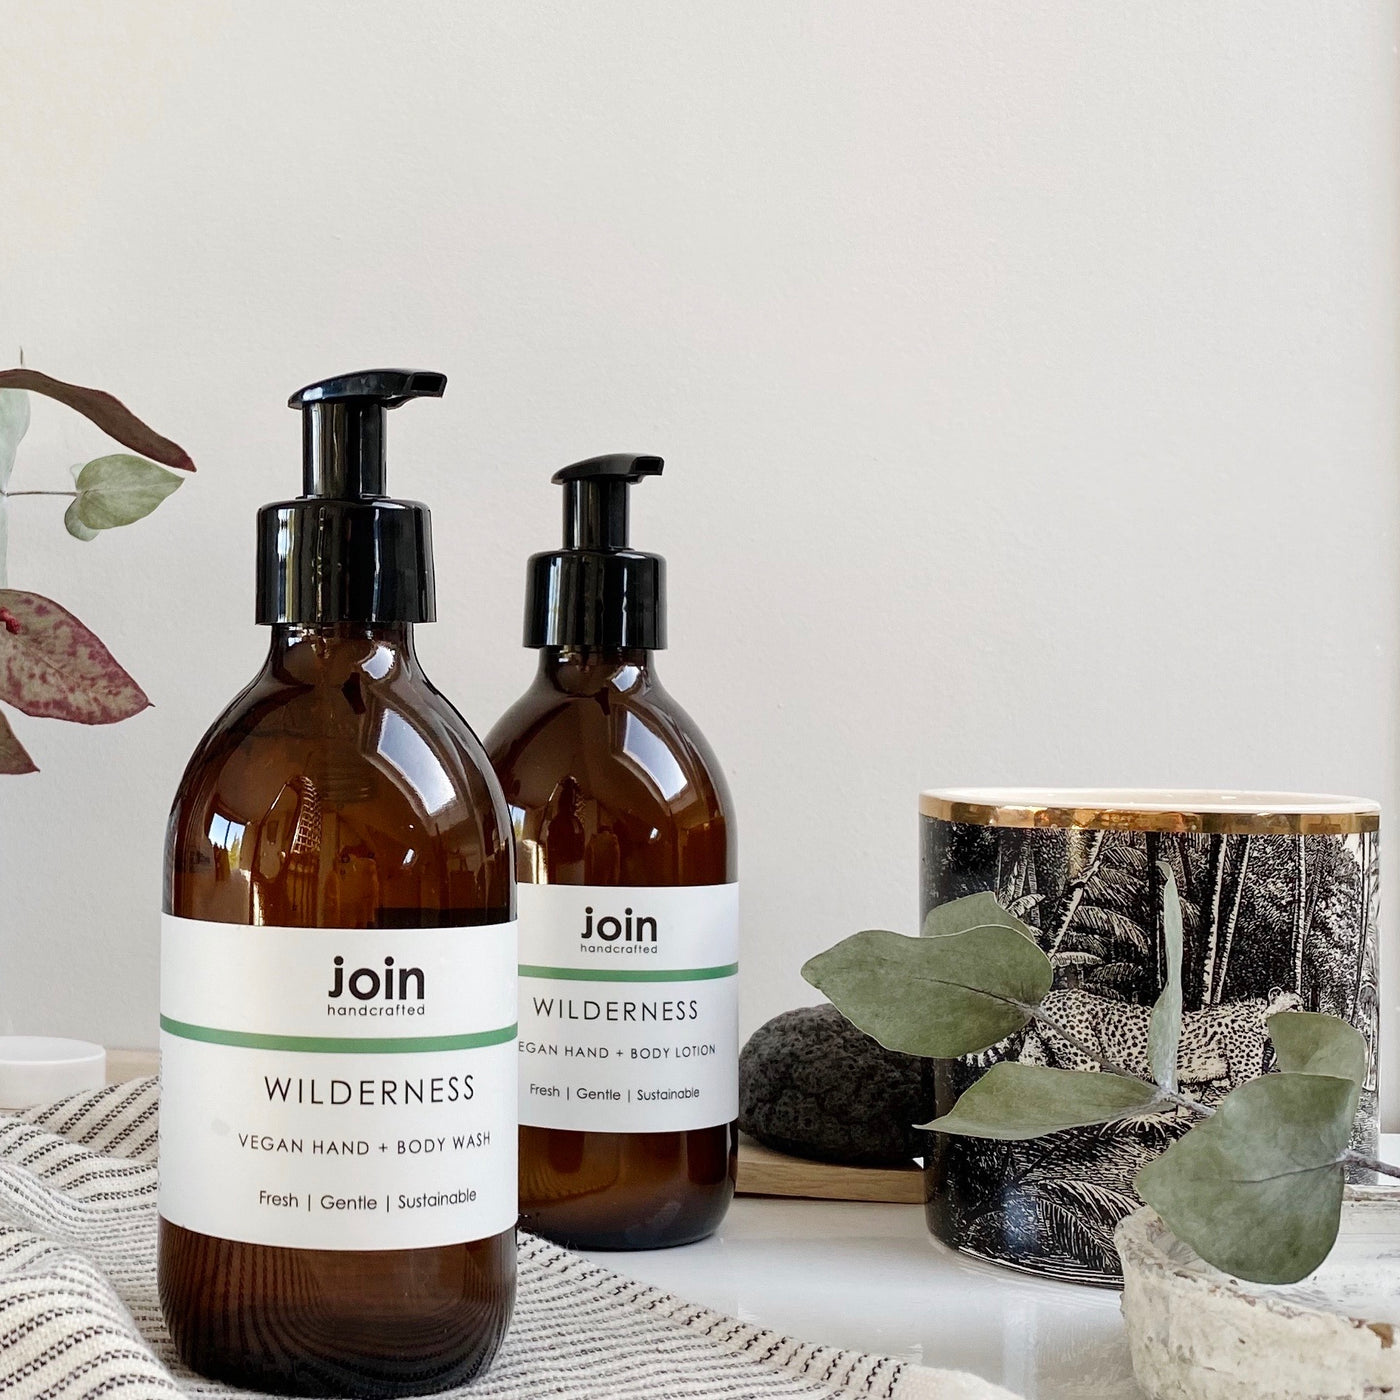 Join Wilderness Hand & Body Wash